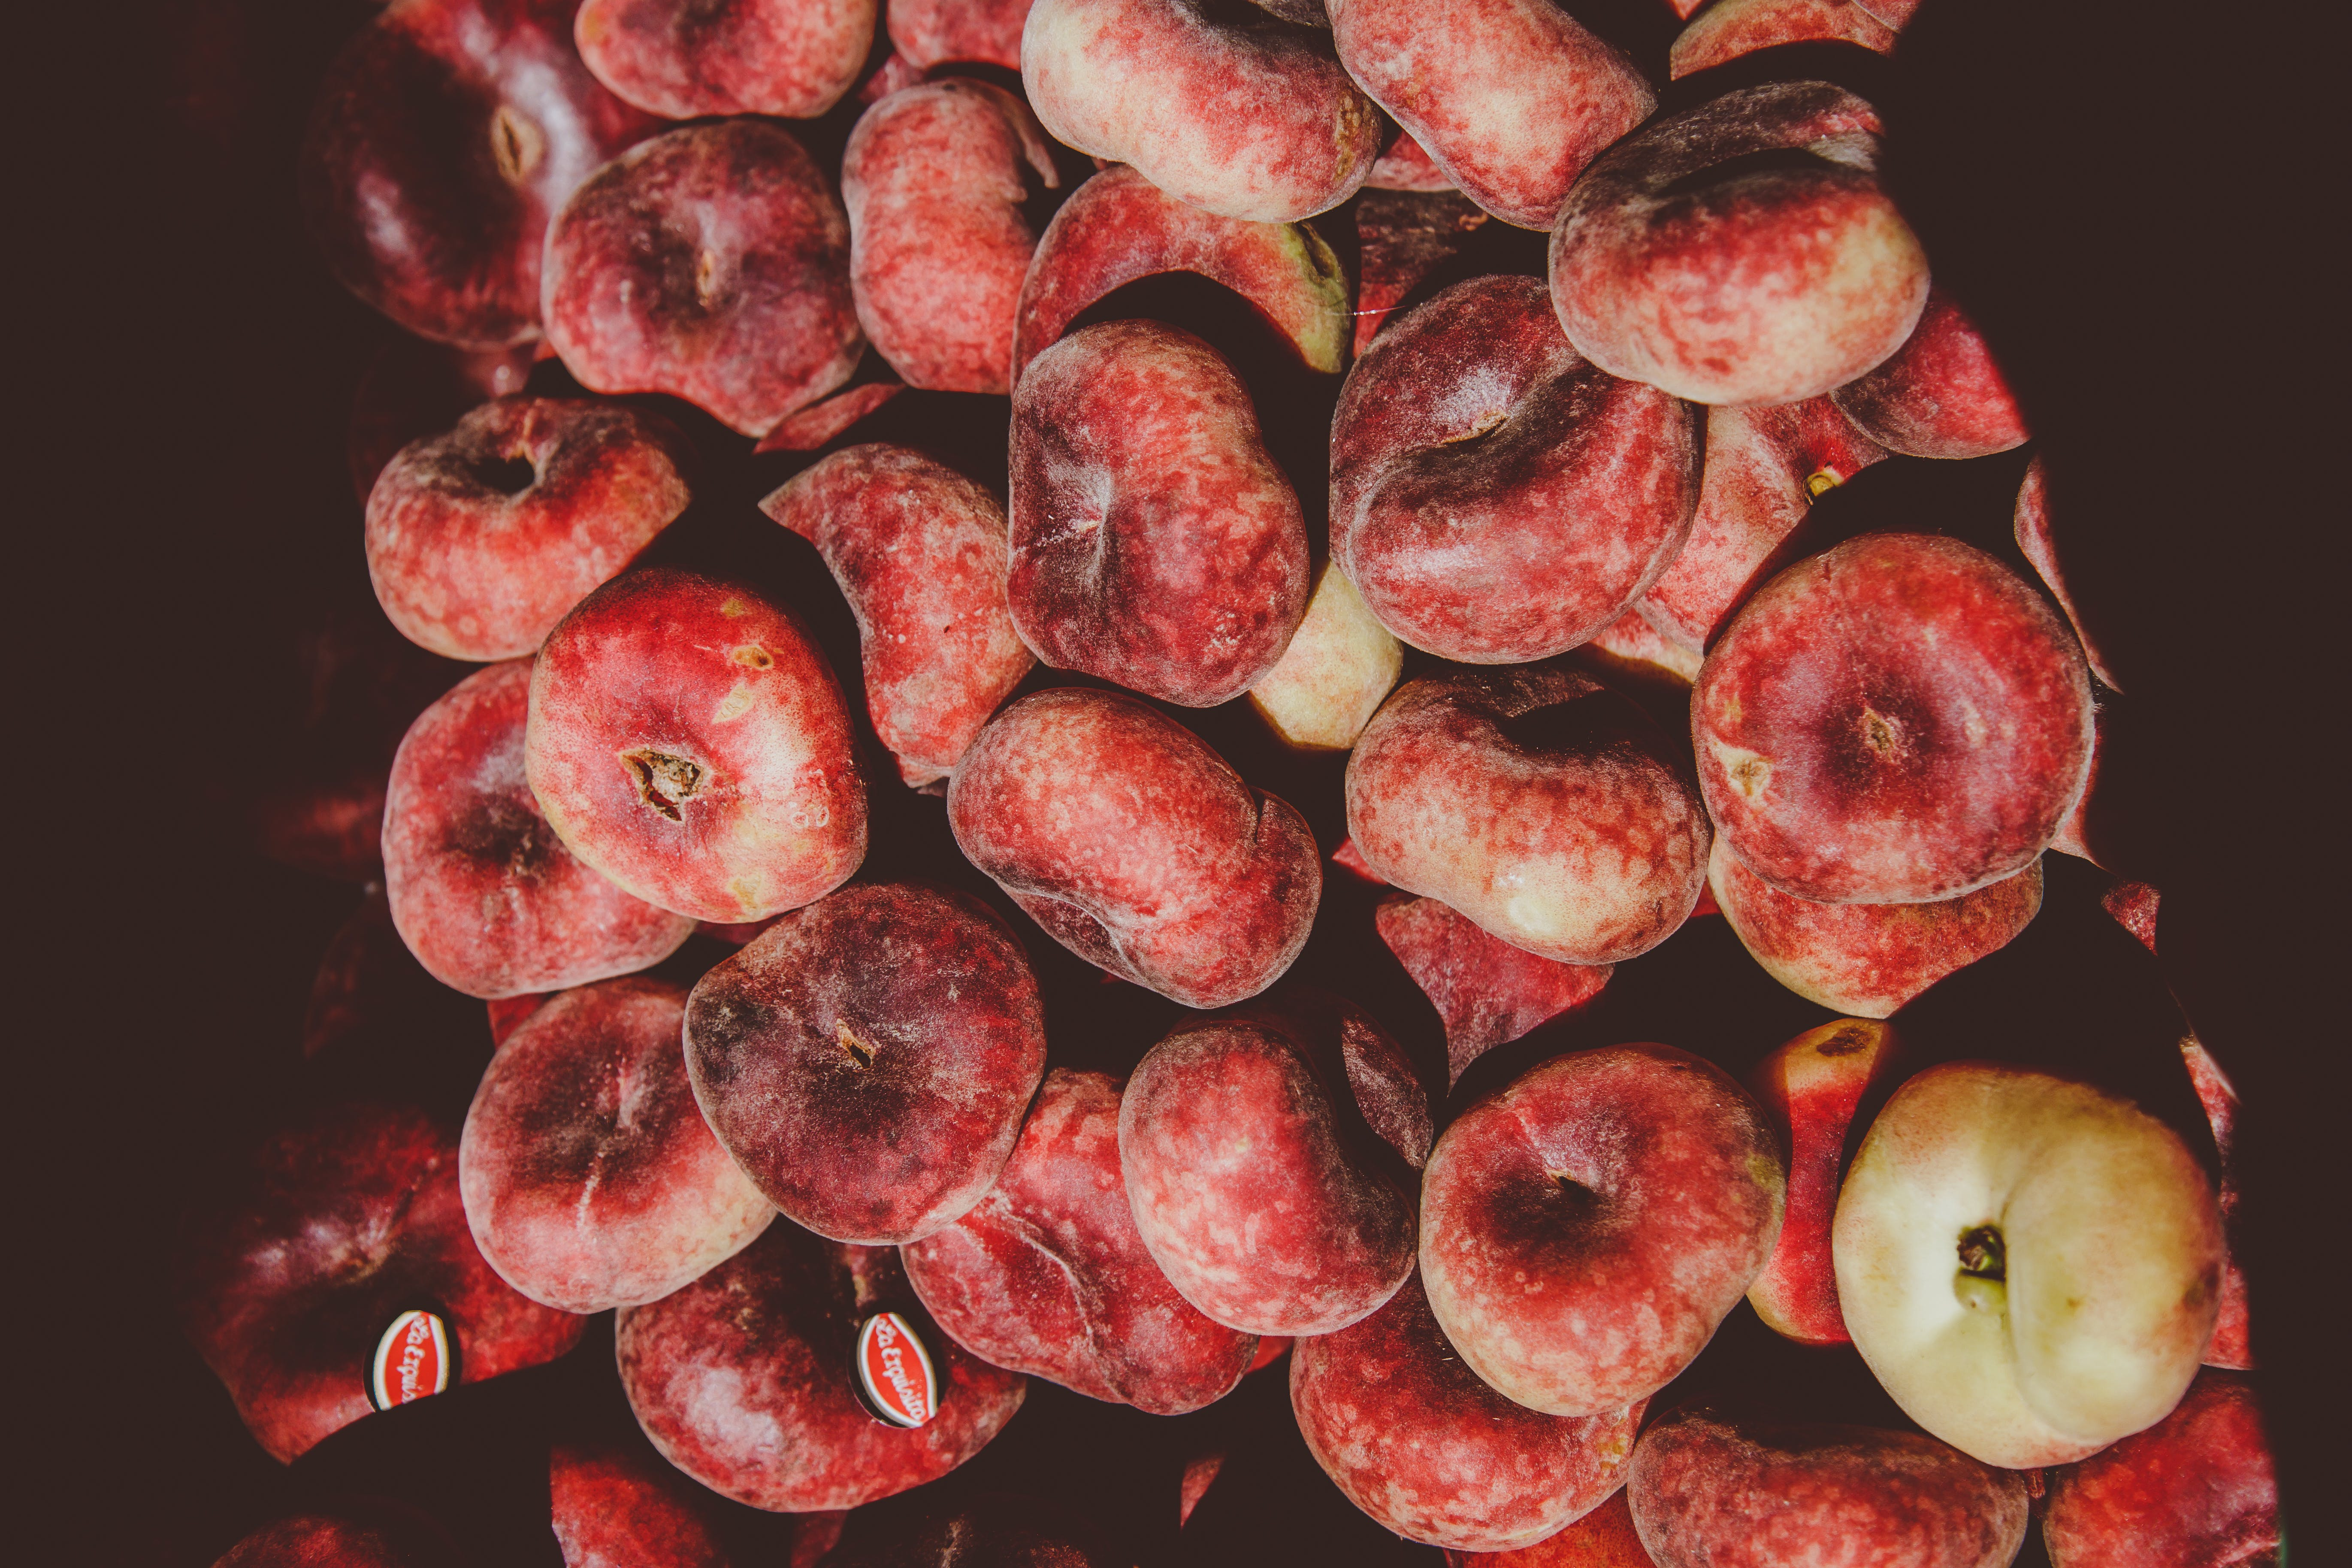 Pile of Round Red Fruits